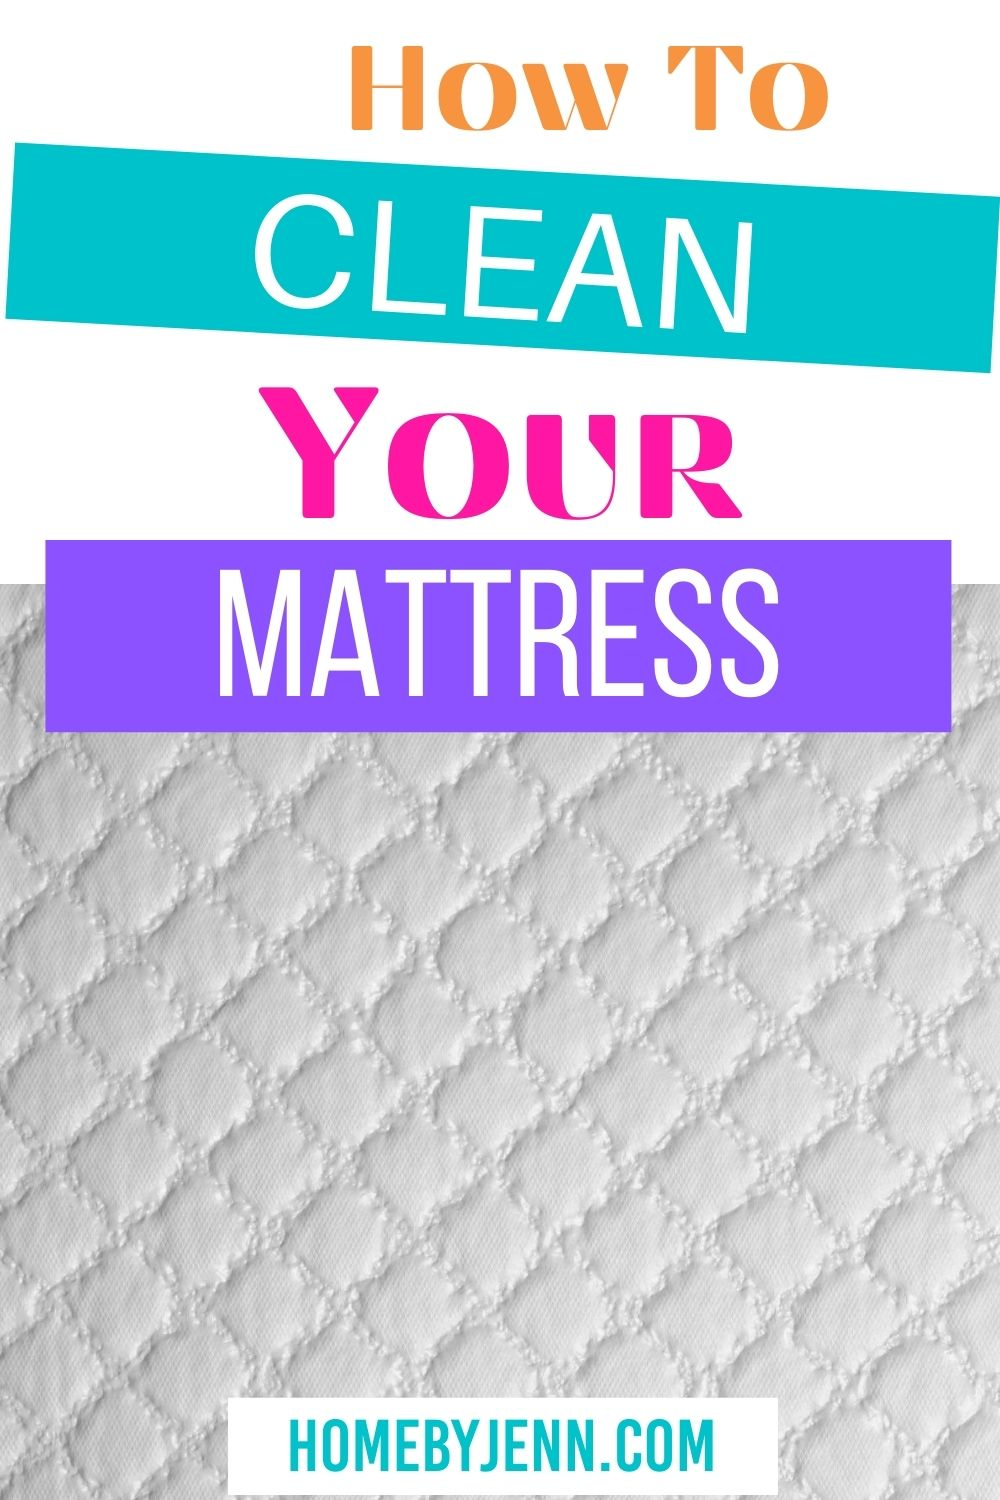 Extend the life of your mattress and remove all of the allergens by cleaning your mattress. This post will show you how to clean pee and other stains from your mattress. #clean #cleanhome #howtocleanamattress #cleanmattress via @homebyjenn